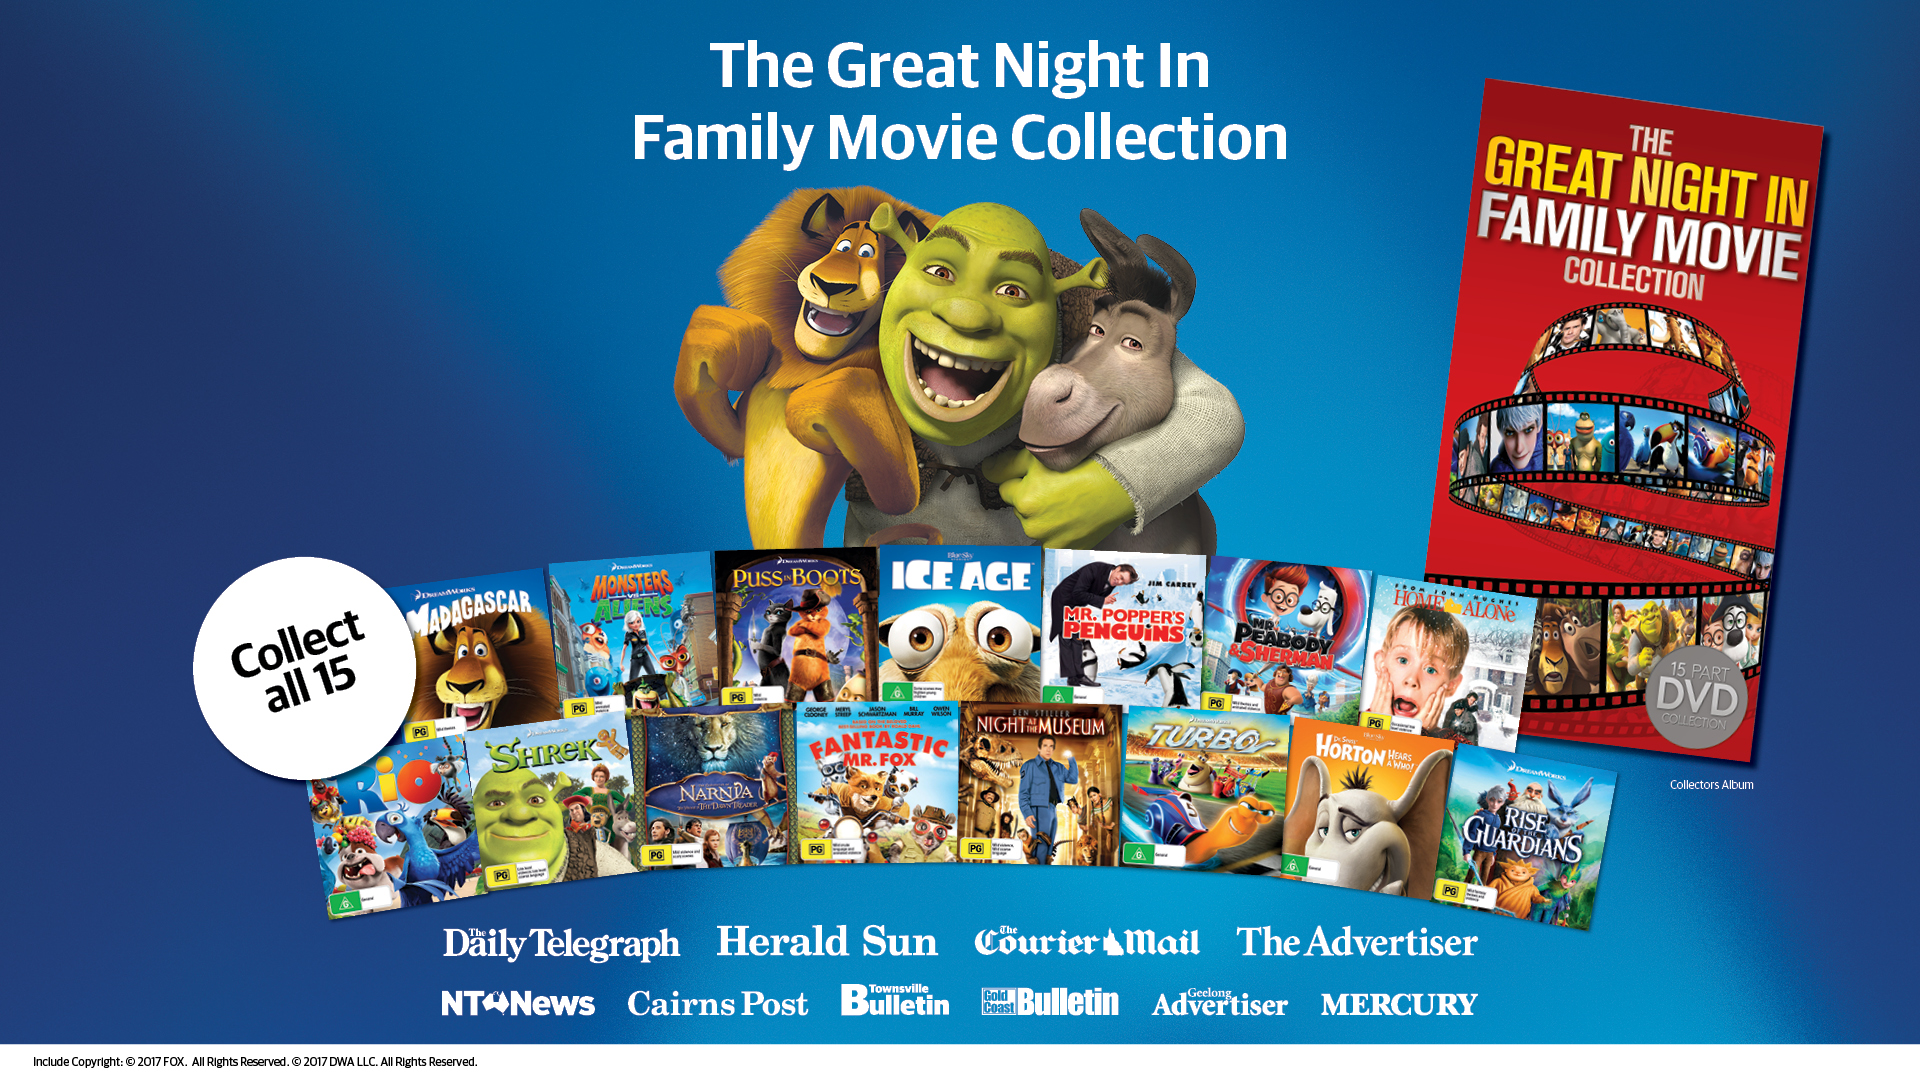 Great Night In Family Movie Collection - PR launch